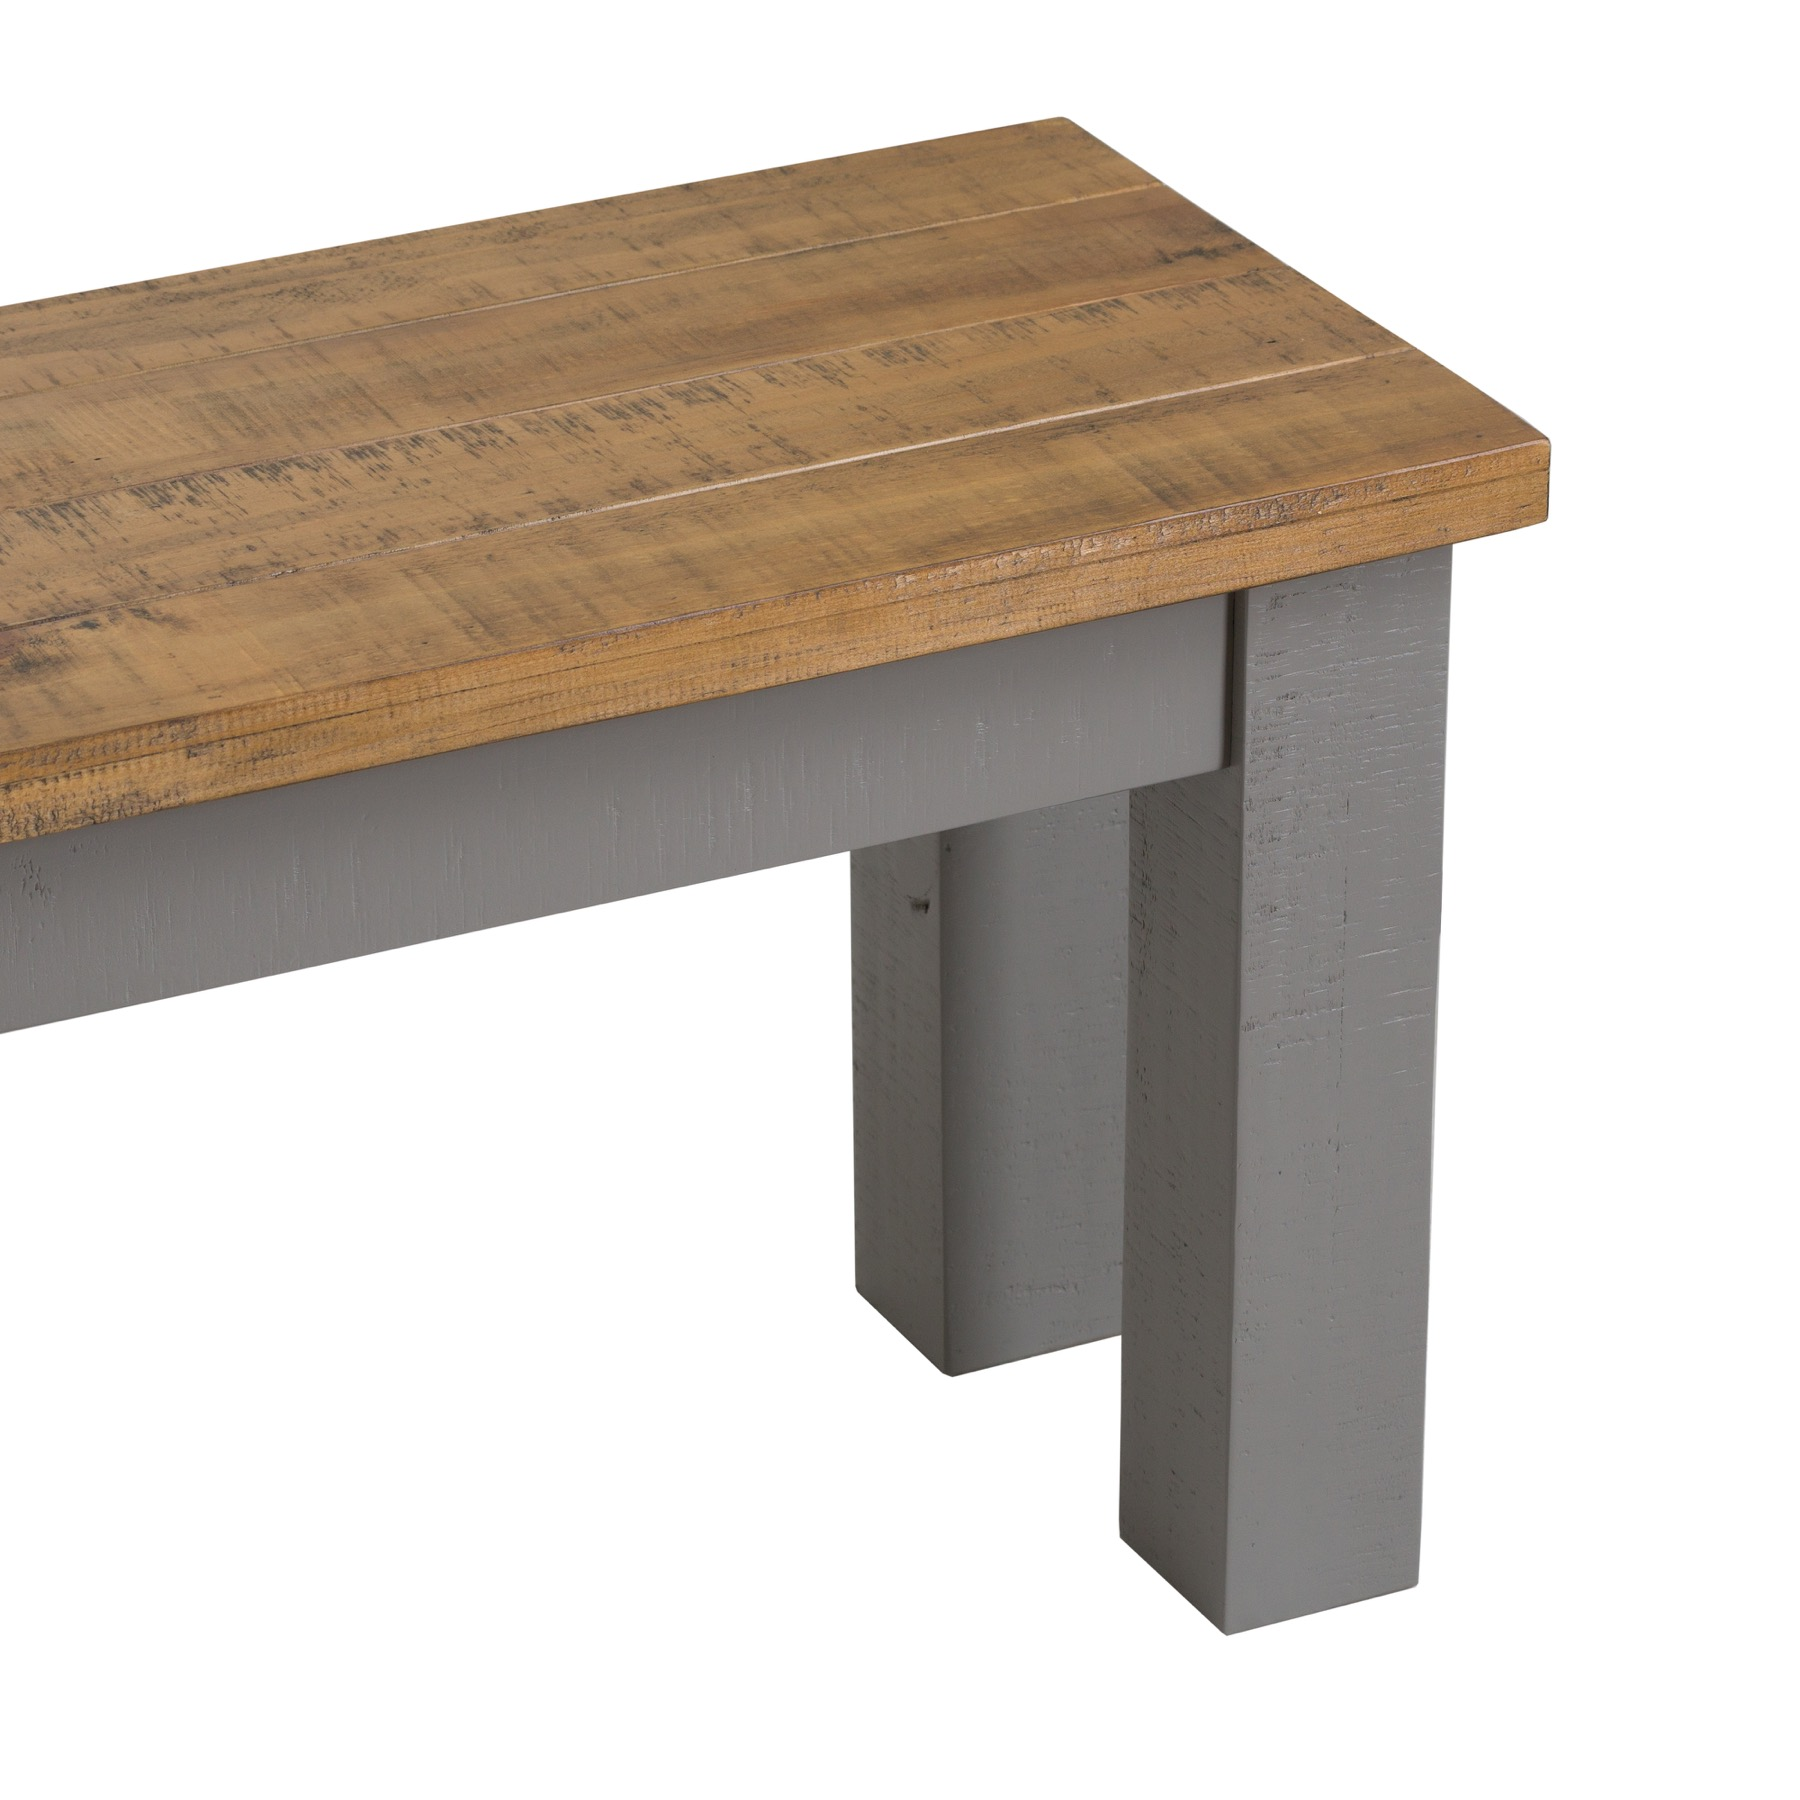 The Byland Collection Dining Bench - Image 2